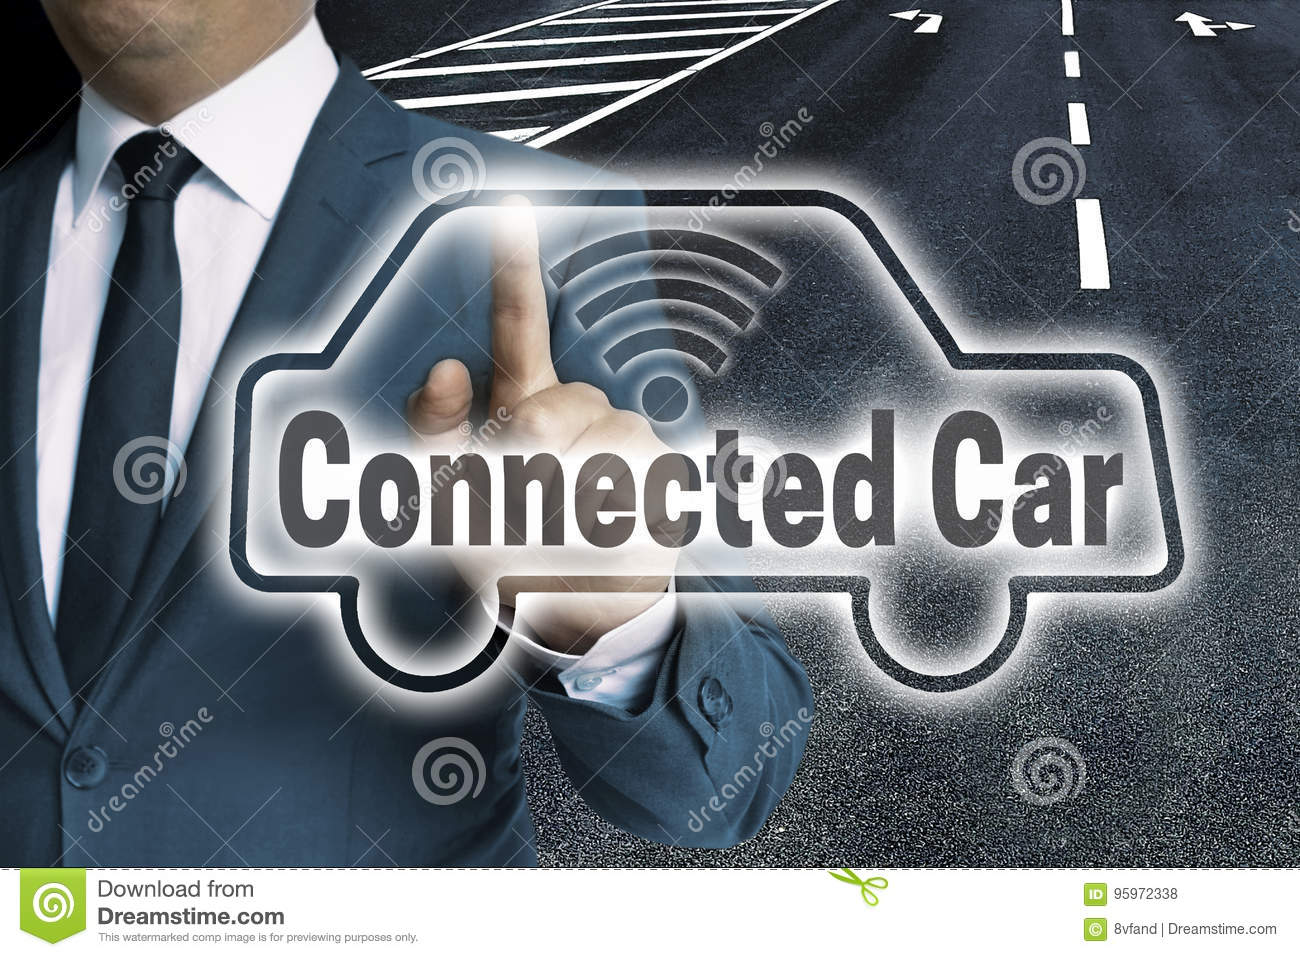 Connected Car Auto touchscreen is operated by man